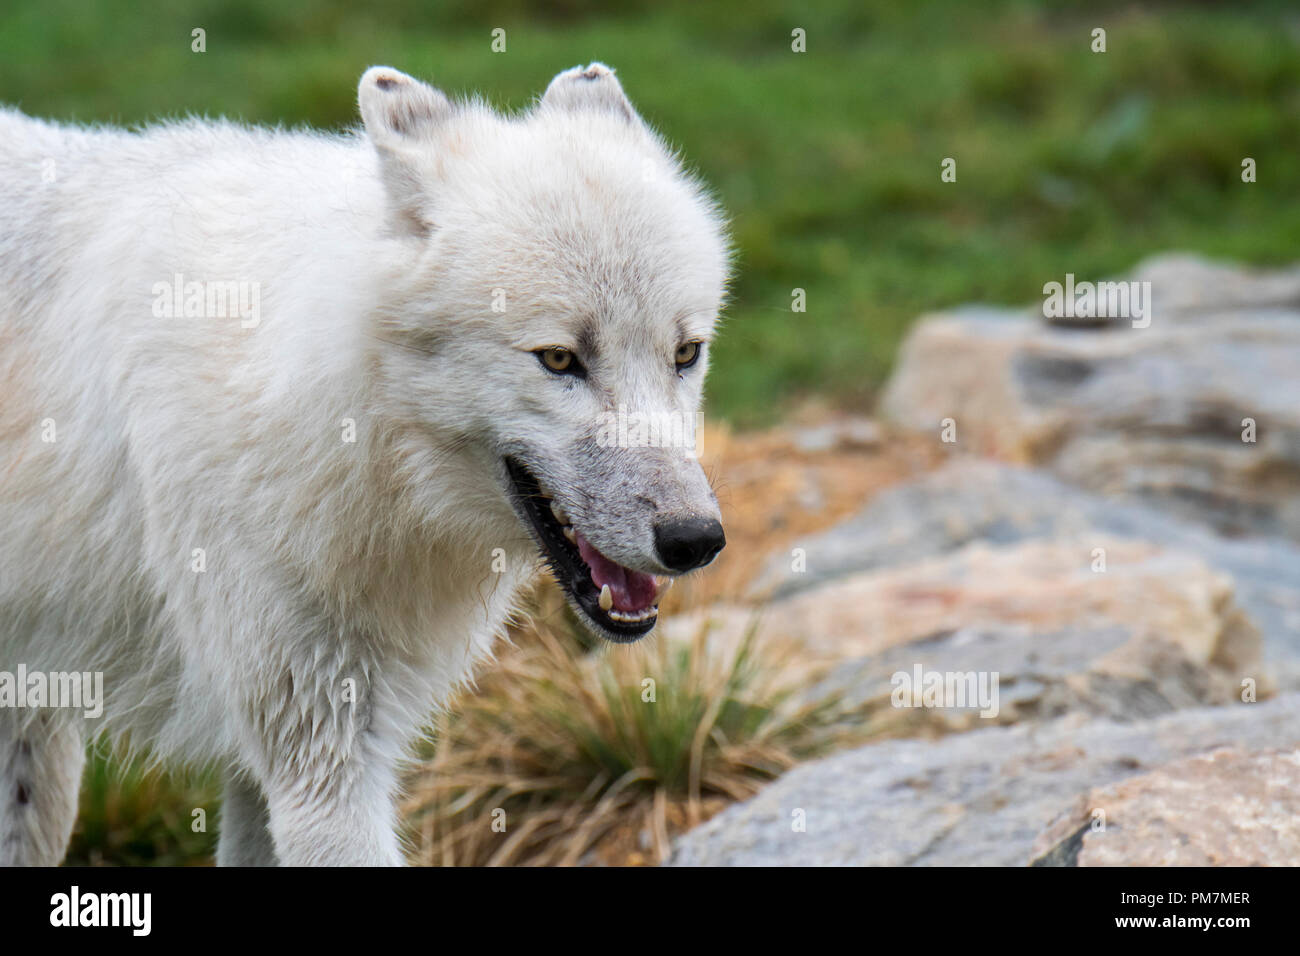 Close up portrait of Canadian Arctic wolf / white wolf / Polar wolf (Canis lupus arctos) native to Canada with flattened ears - Stock Image